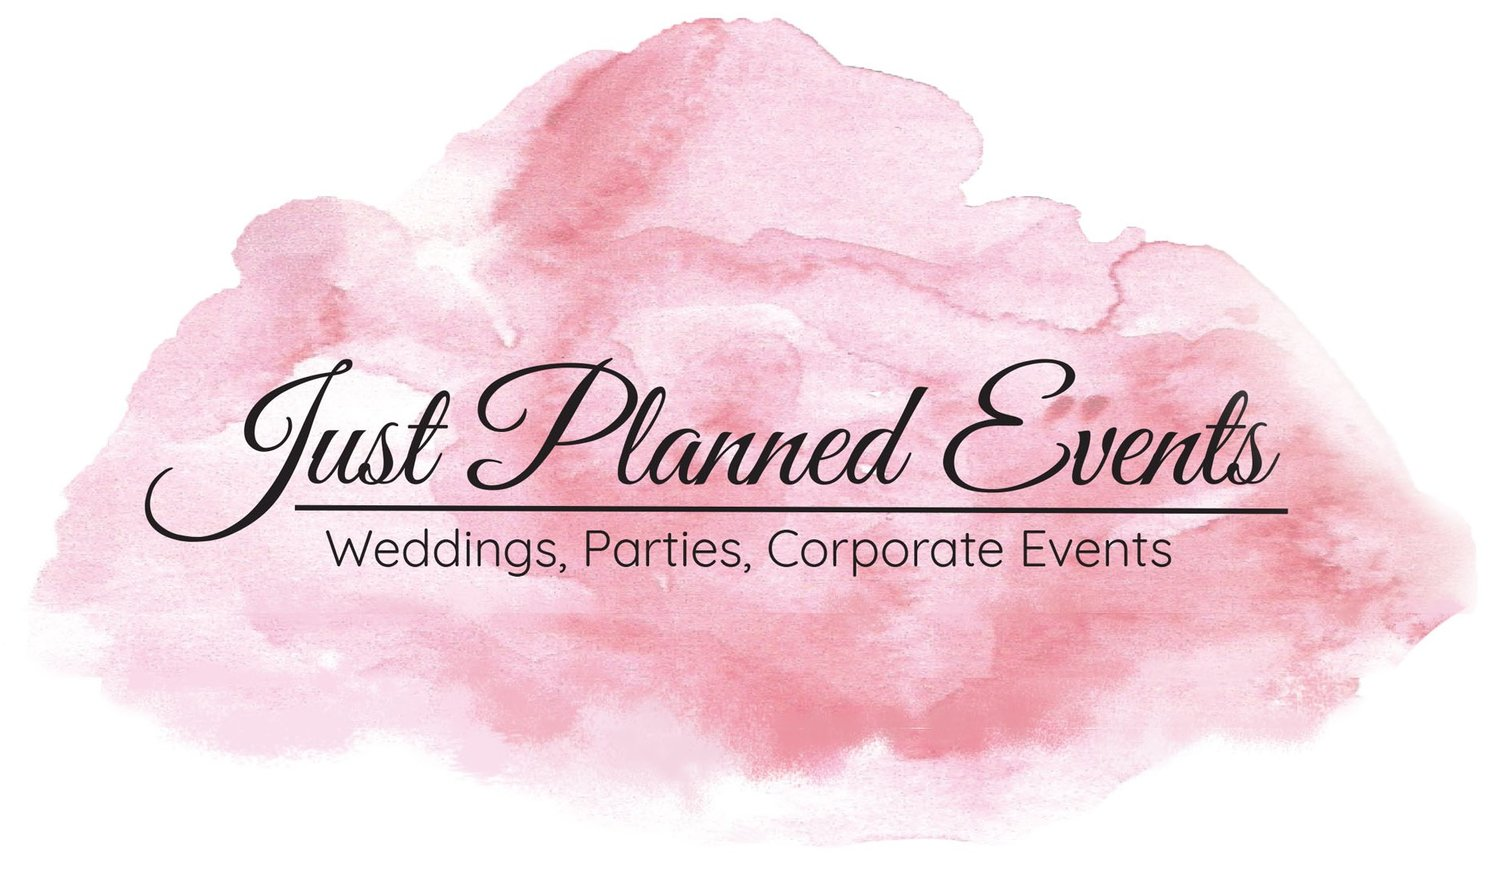 Just Planned Events